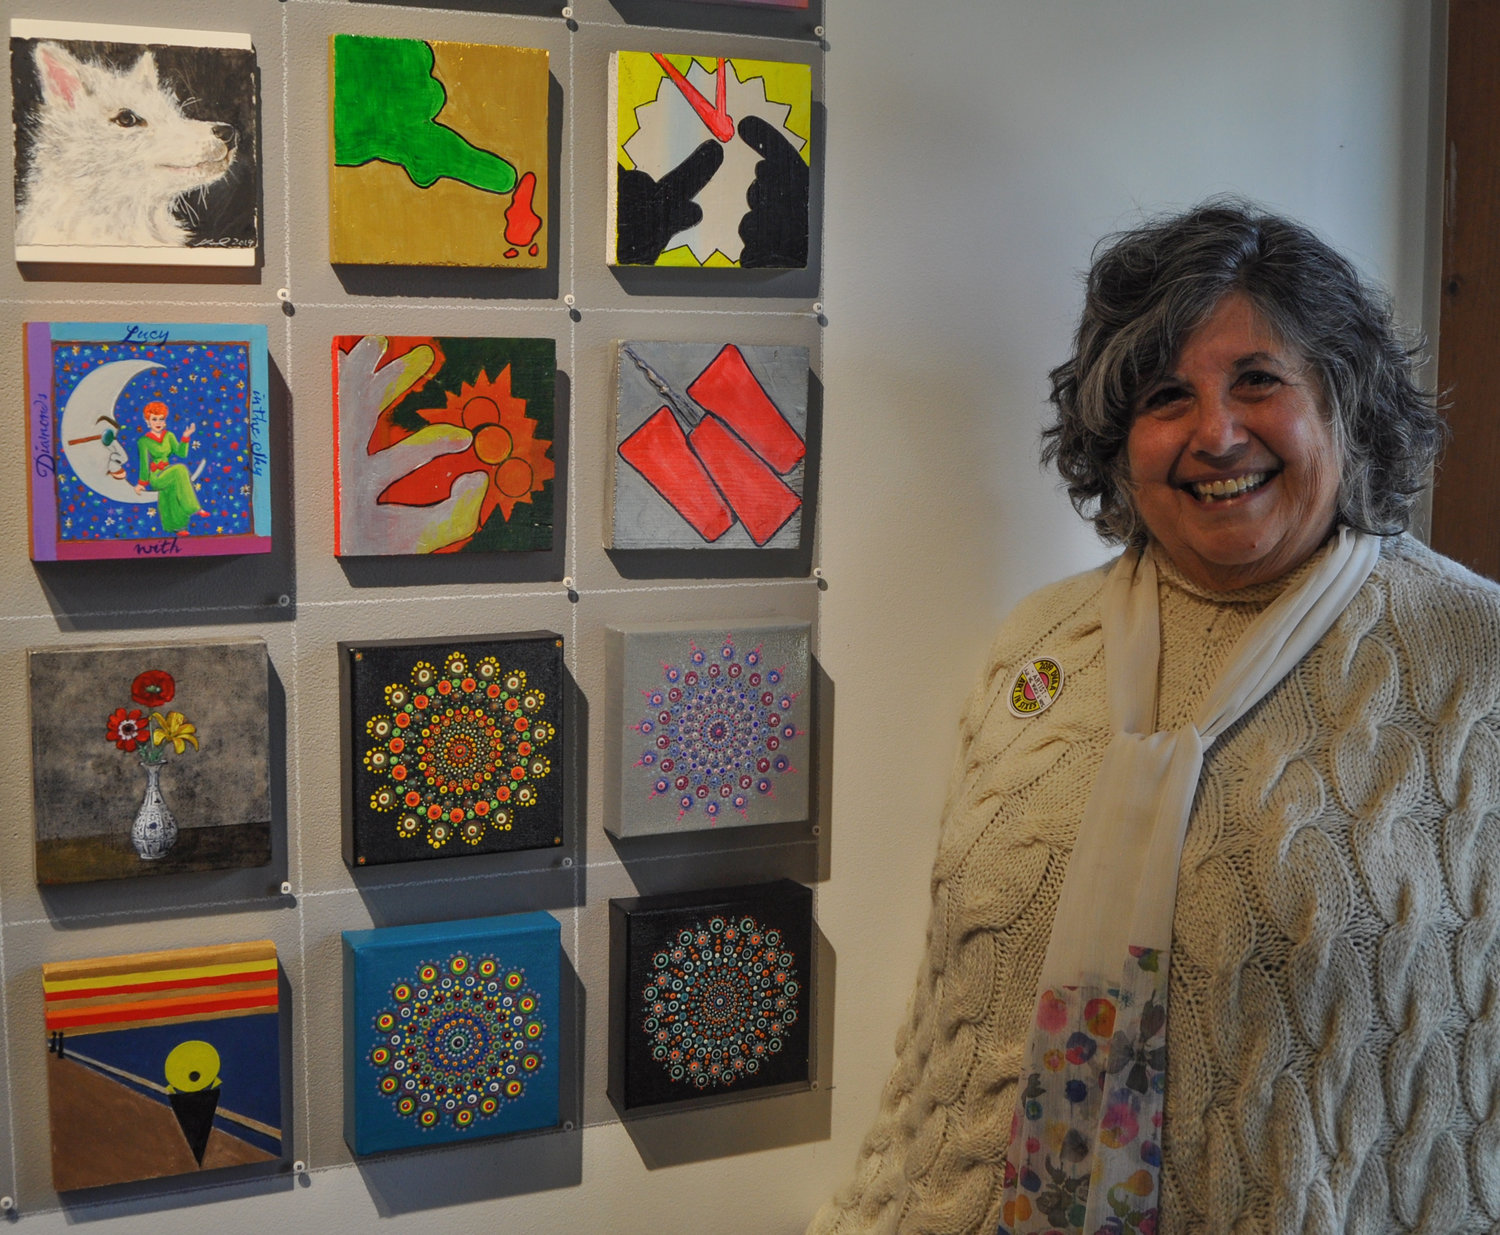 """I really just started painting three years ago, and this is my first time showing my work,"" artist Esther Klein admitted as I admired her six-by-six-inch intricately designed mandalas, now on exhibit at the DVAA."